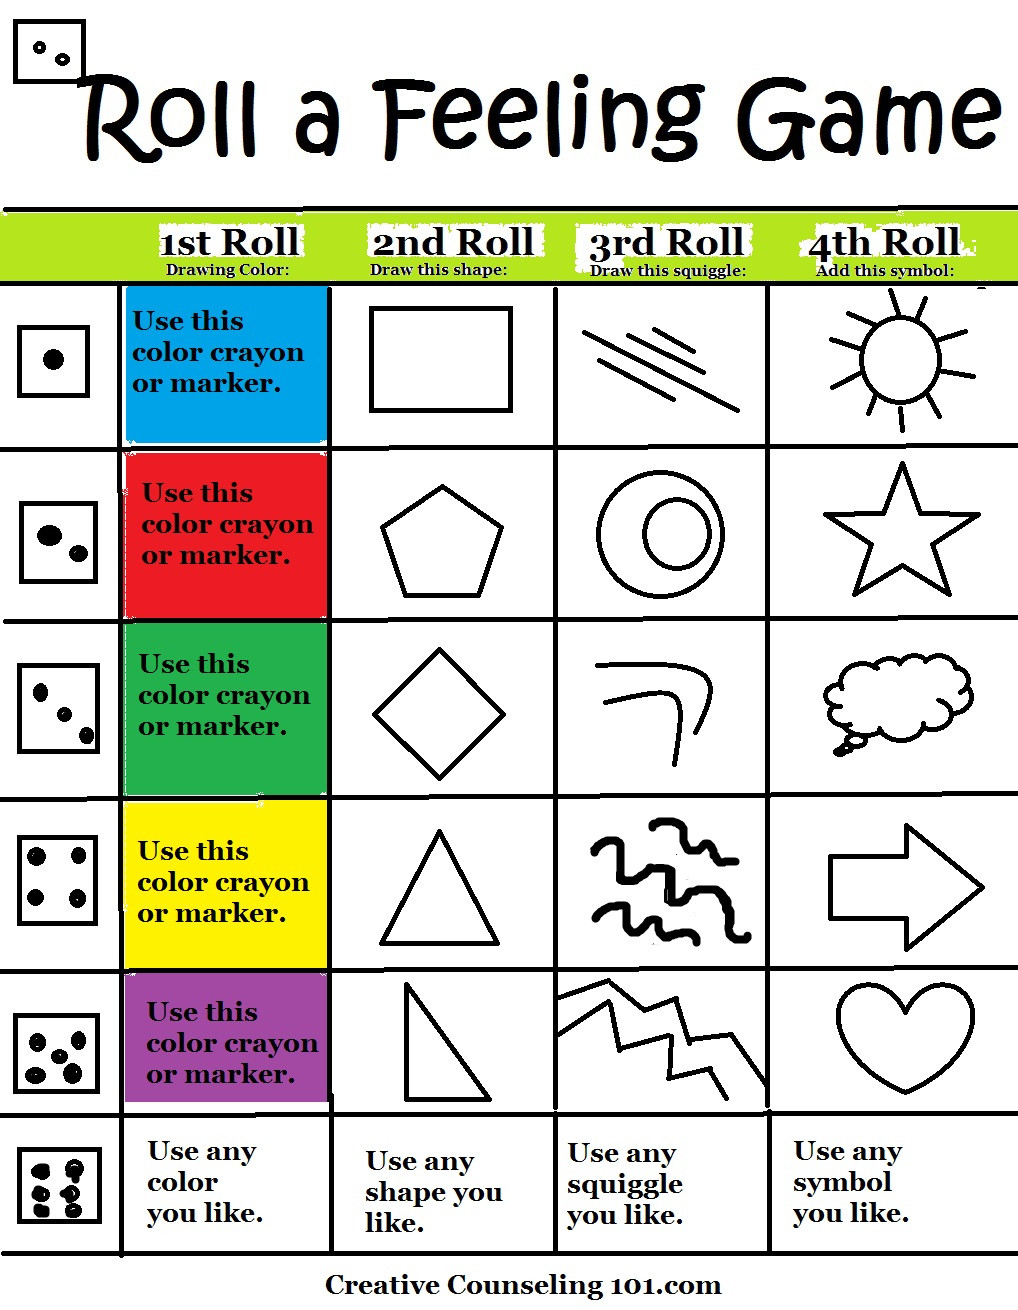 Free Printable Counseling Worksheets Beyond Art therapy Roll A Feelings Game